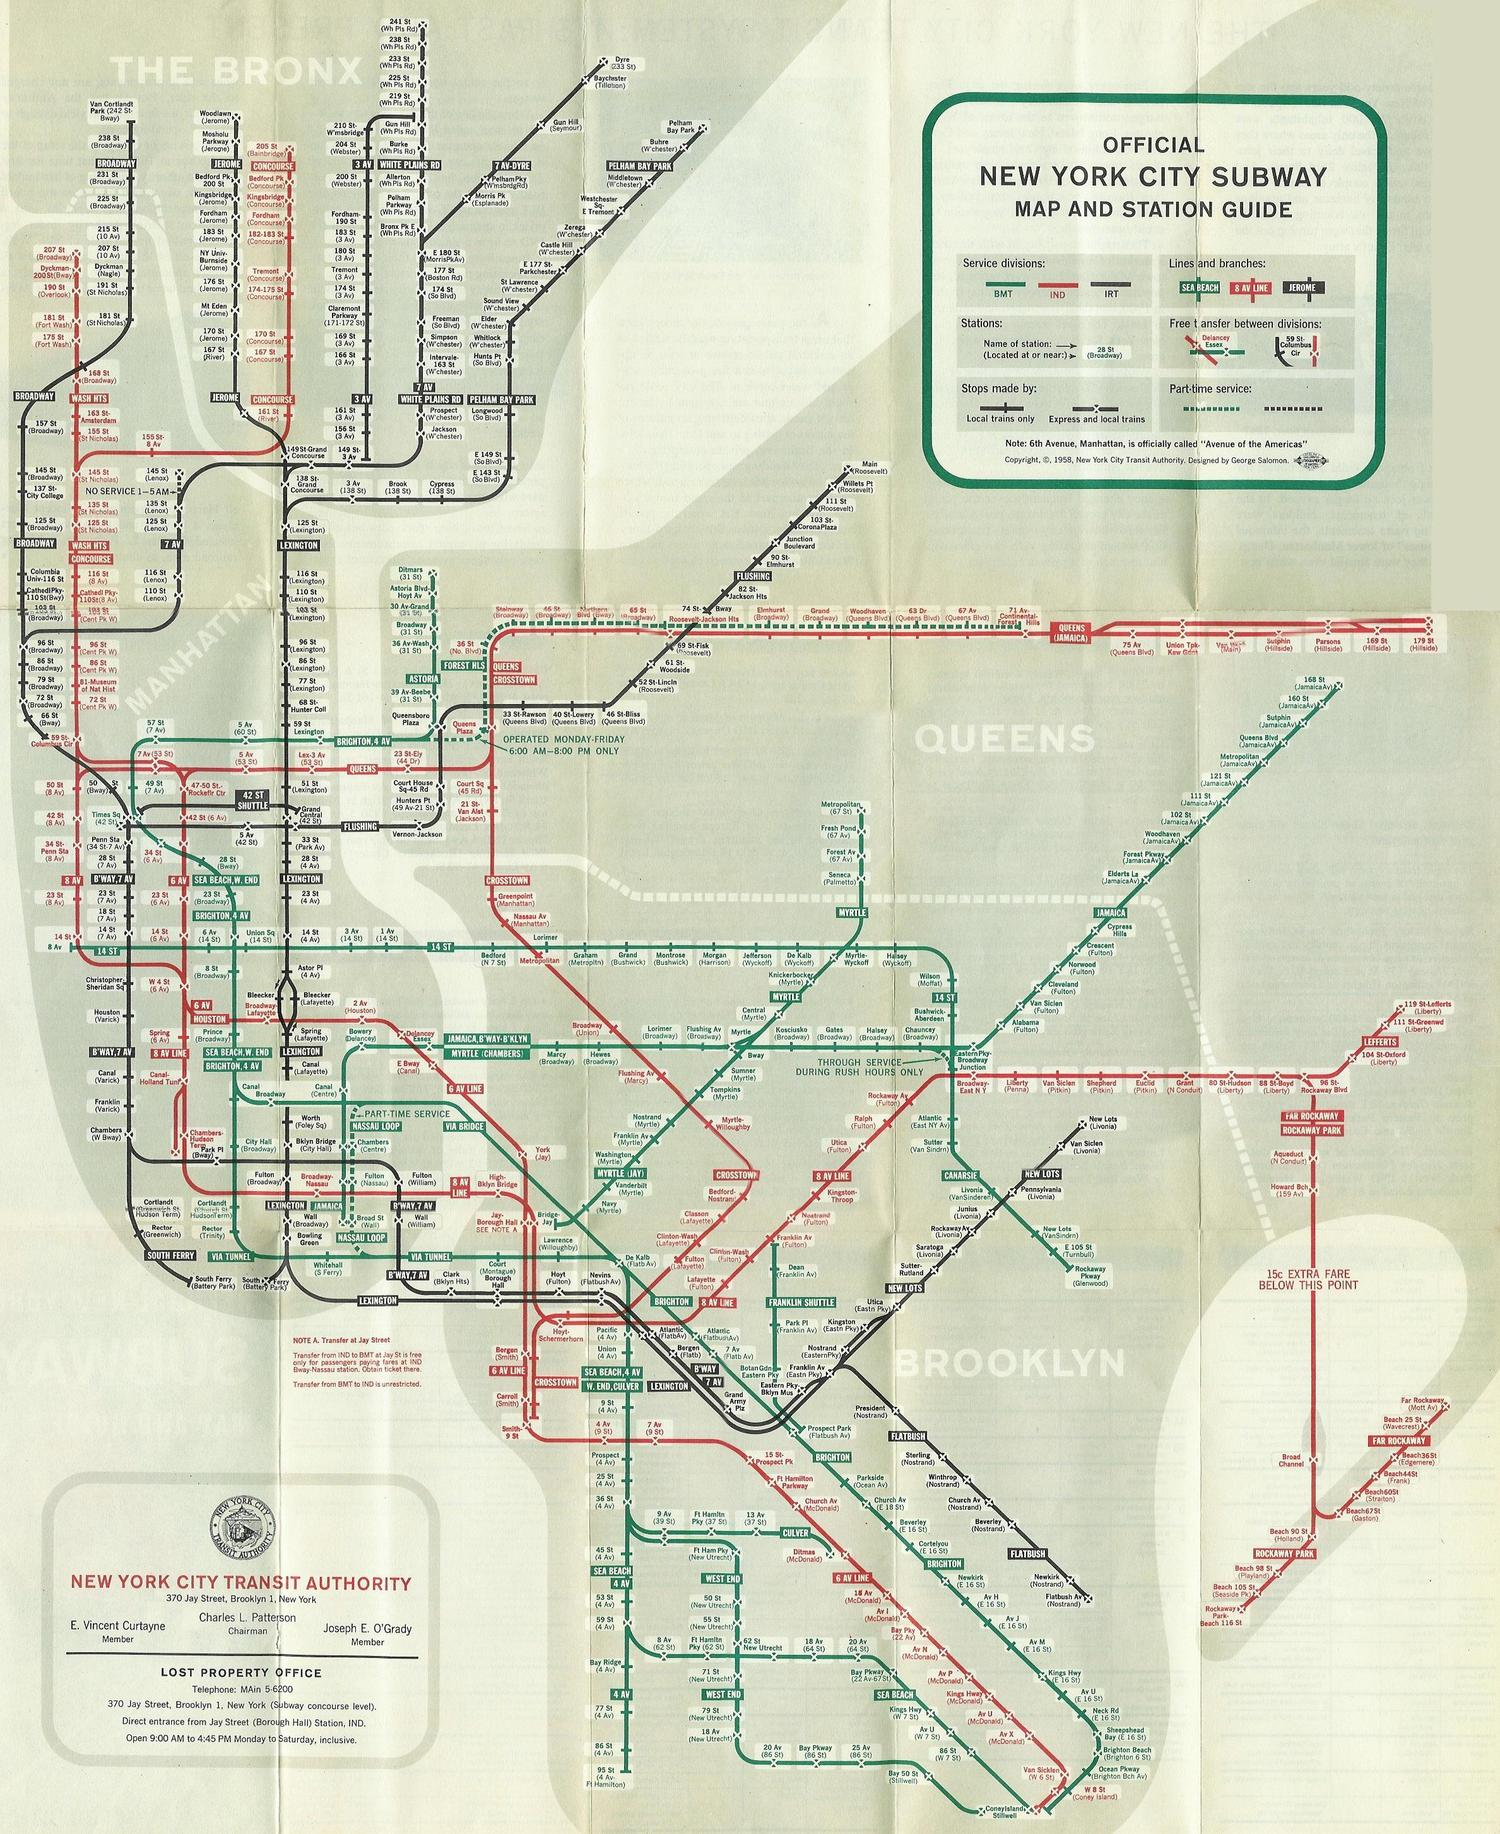 official new york city subway map and station guide 1958